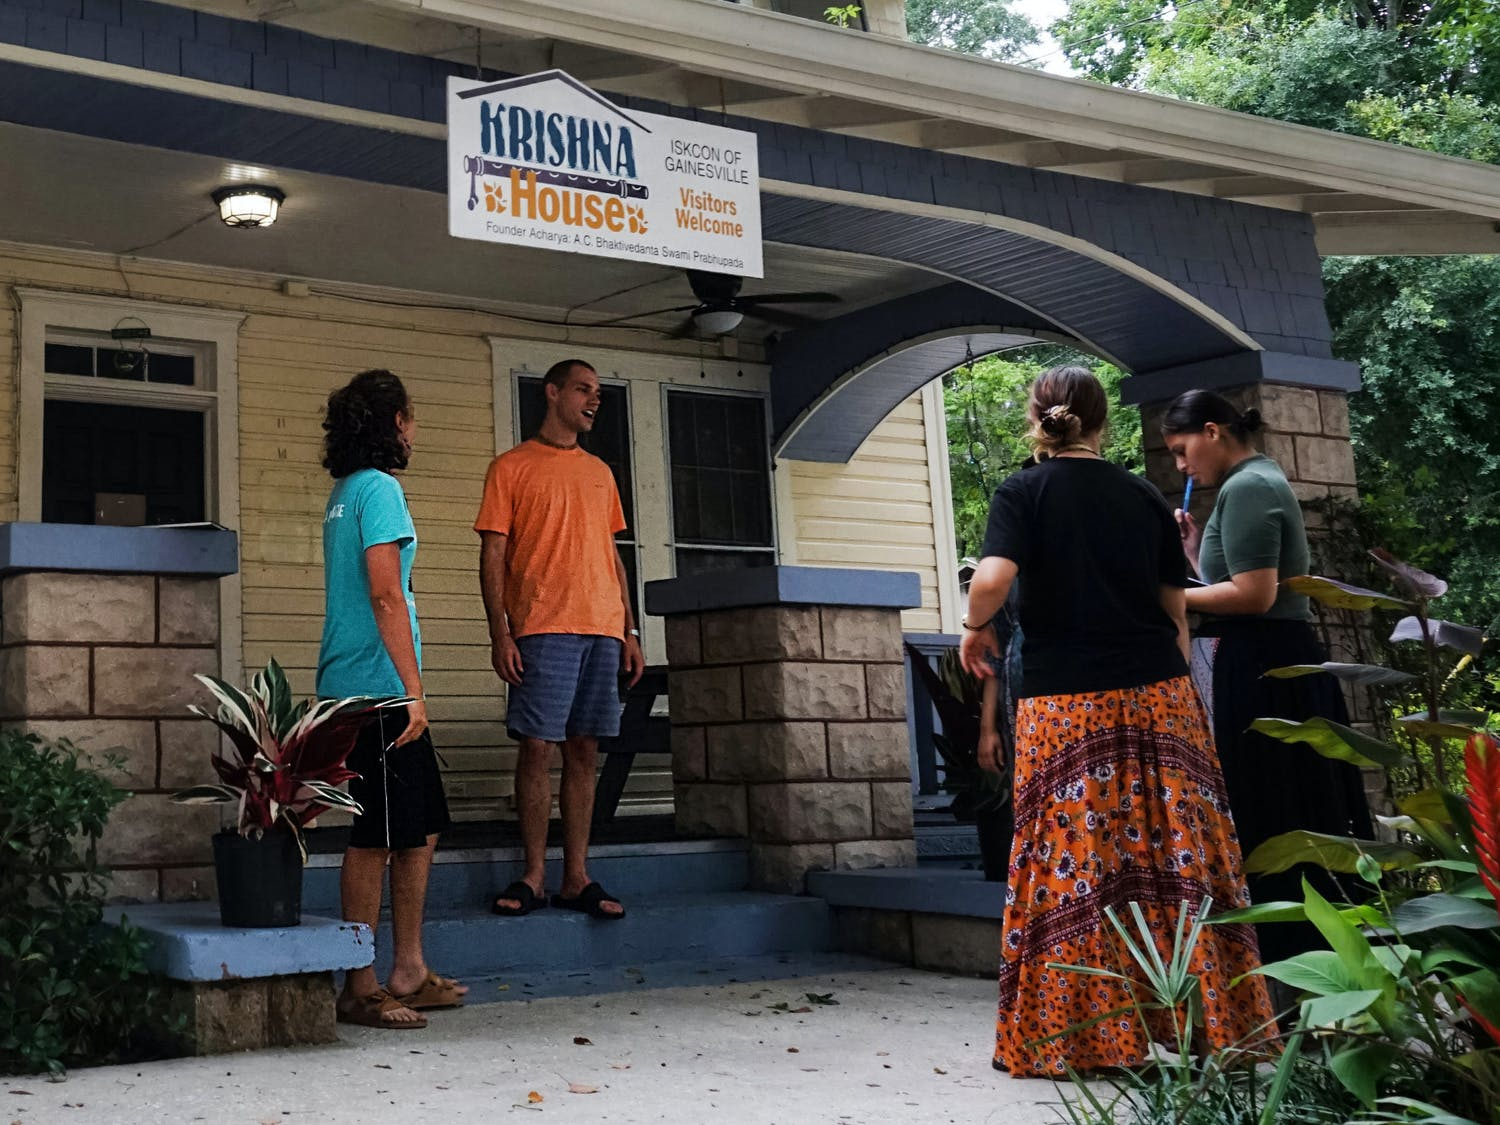 A group of Hare Krishnas gathered outside the Krishna House at 214 NW 14th Street in Gainesville on Thursday, July 29, 2021. The Gainesville community is celebrating the 50th anniversary of Krishna Lunch at UF this weekend.